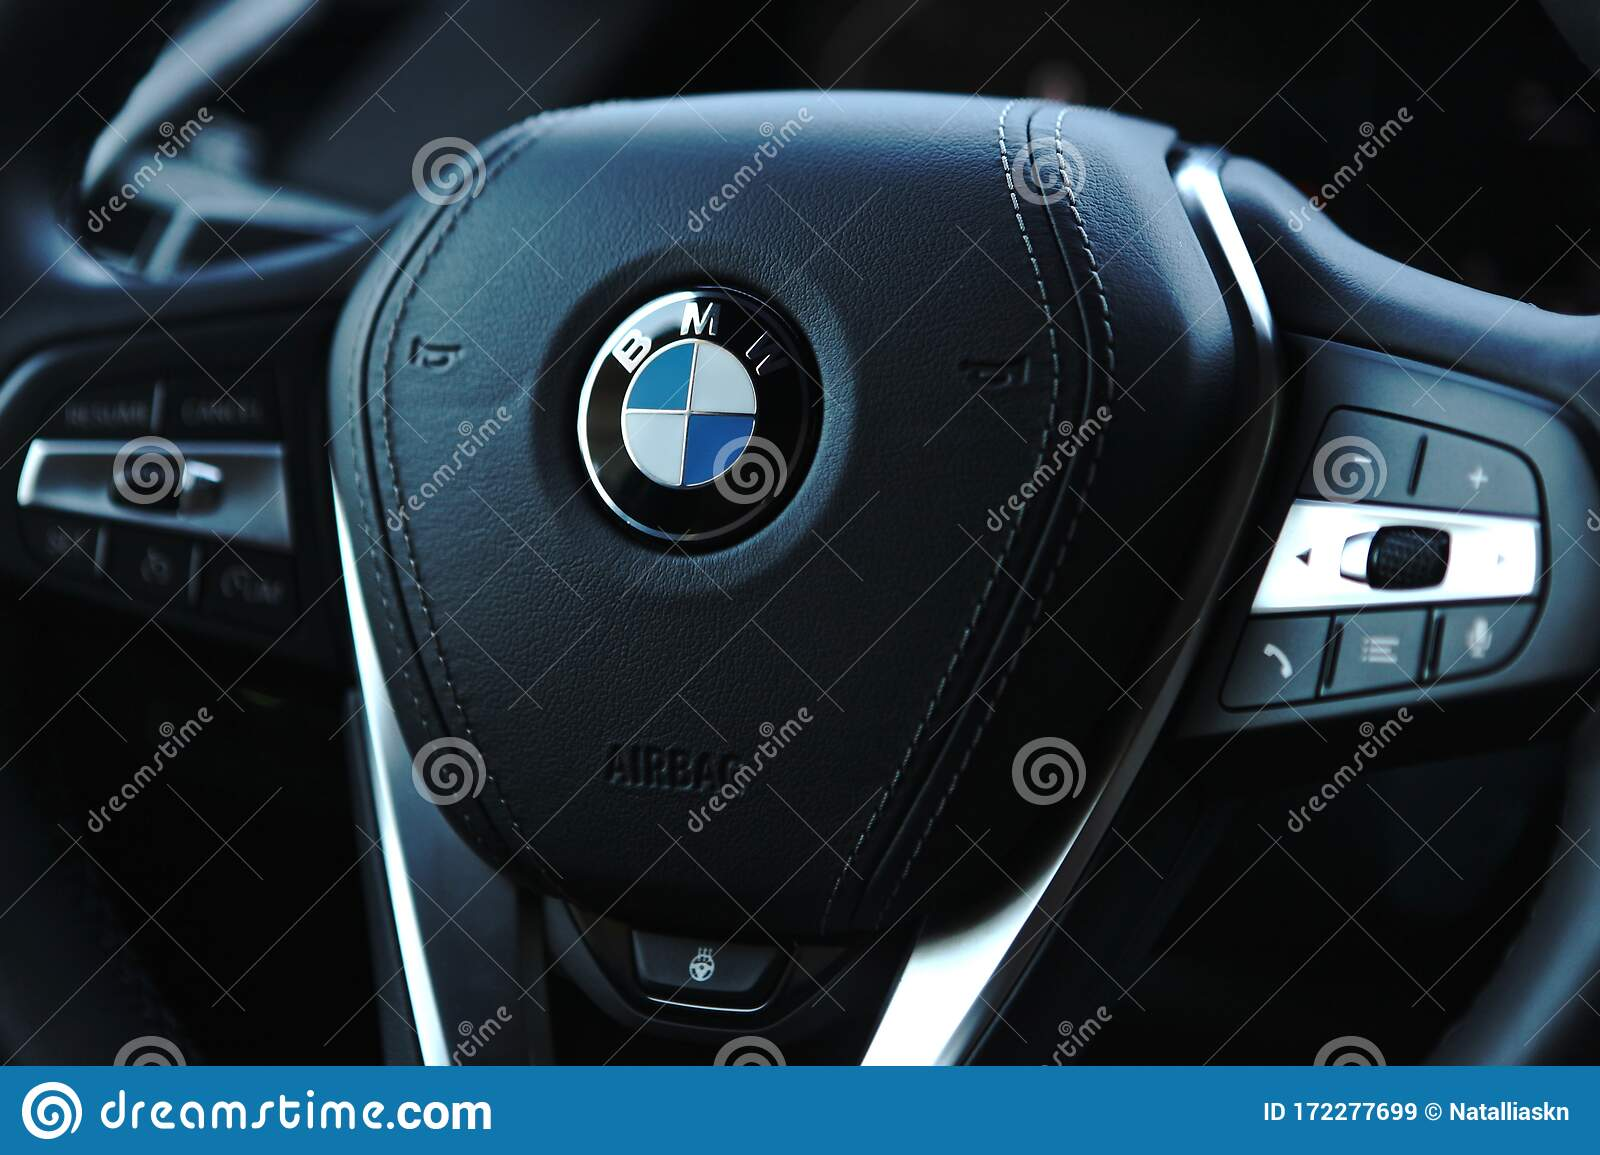 Steering Wheel From A BMW Car Editorial Stock Image ... - photo#12